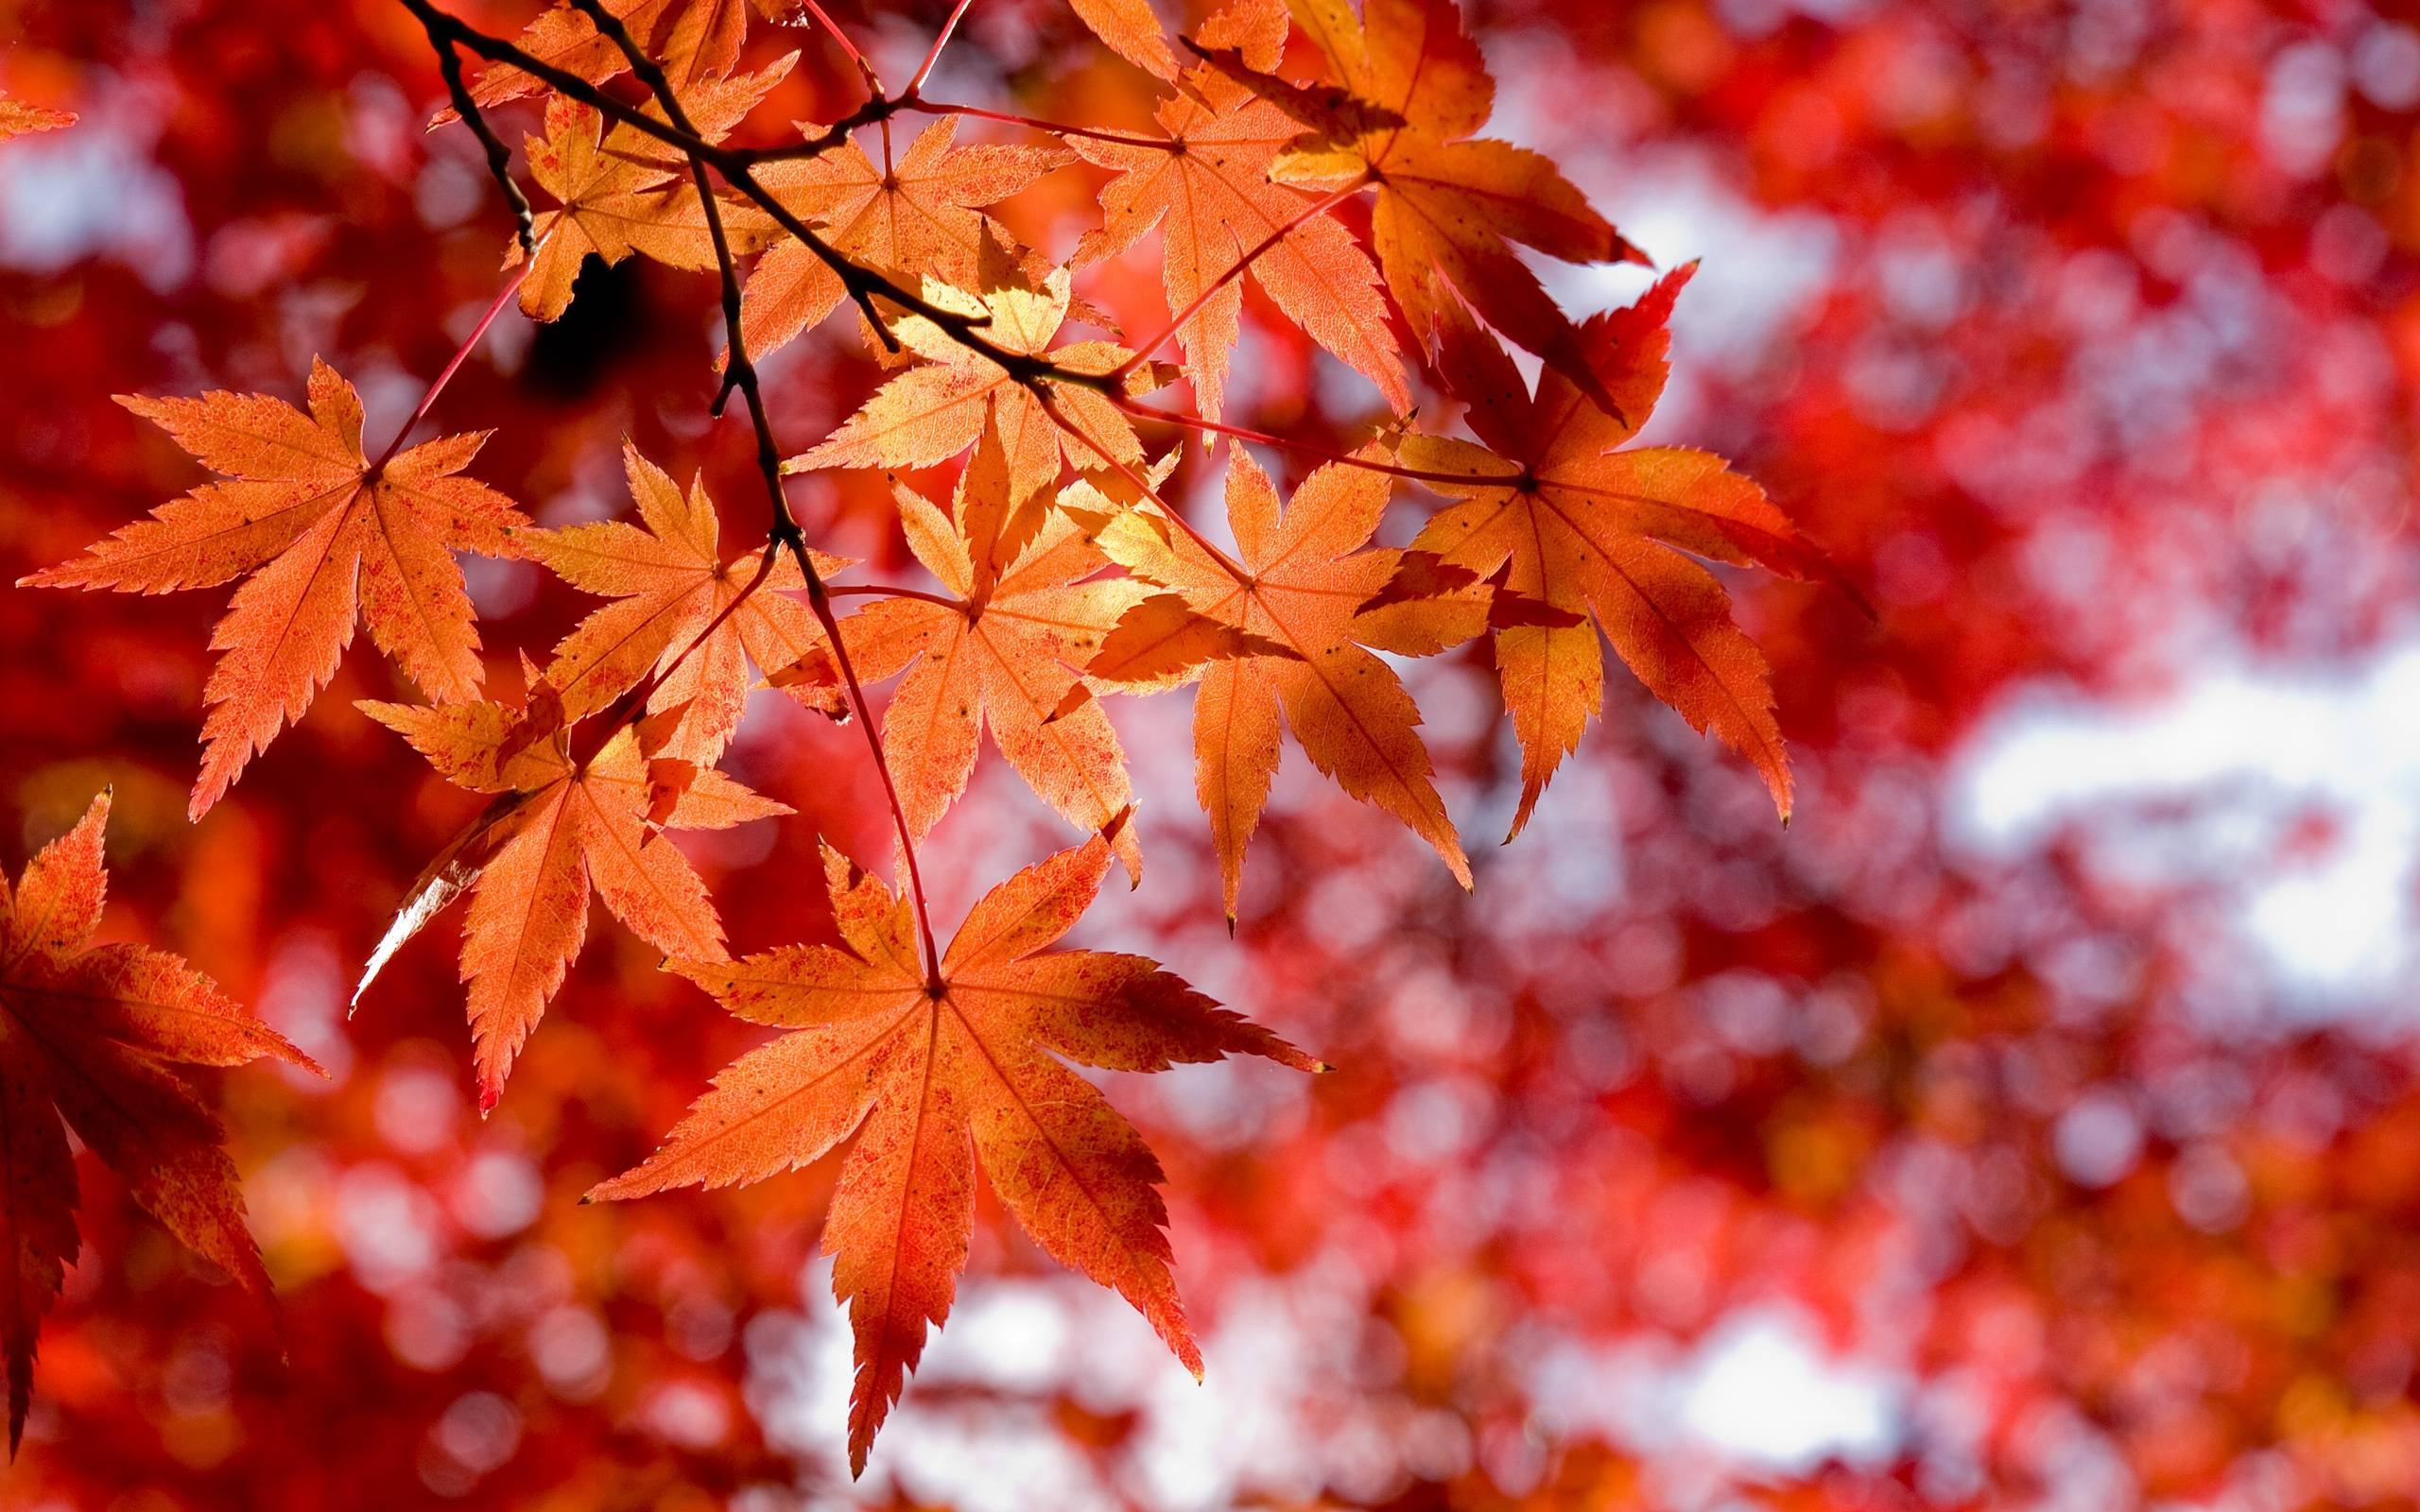 red leaves hd wallpaper - photo #6